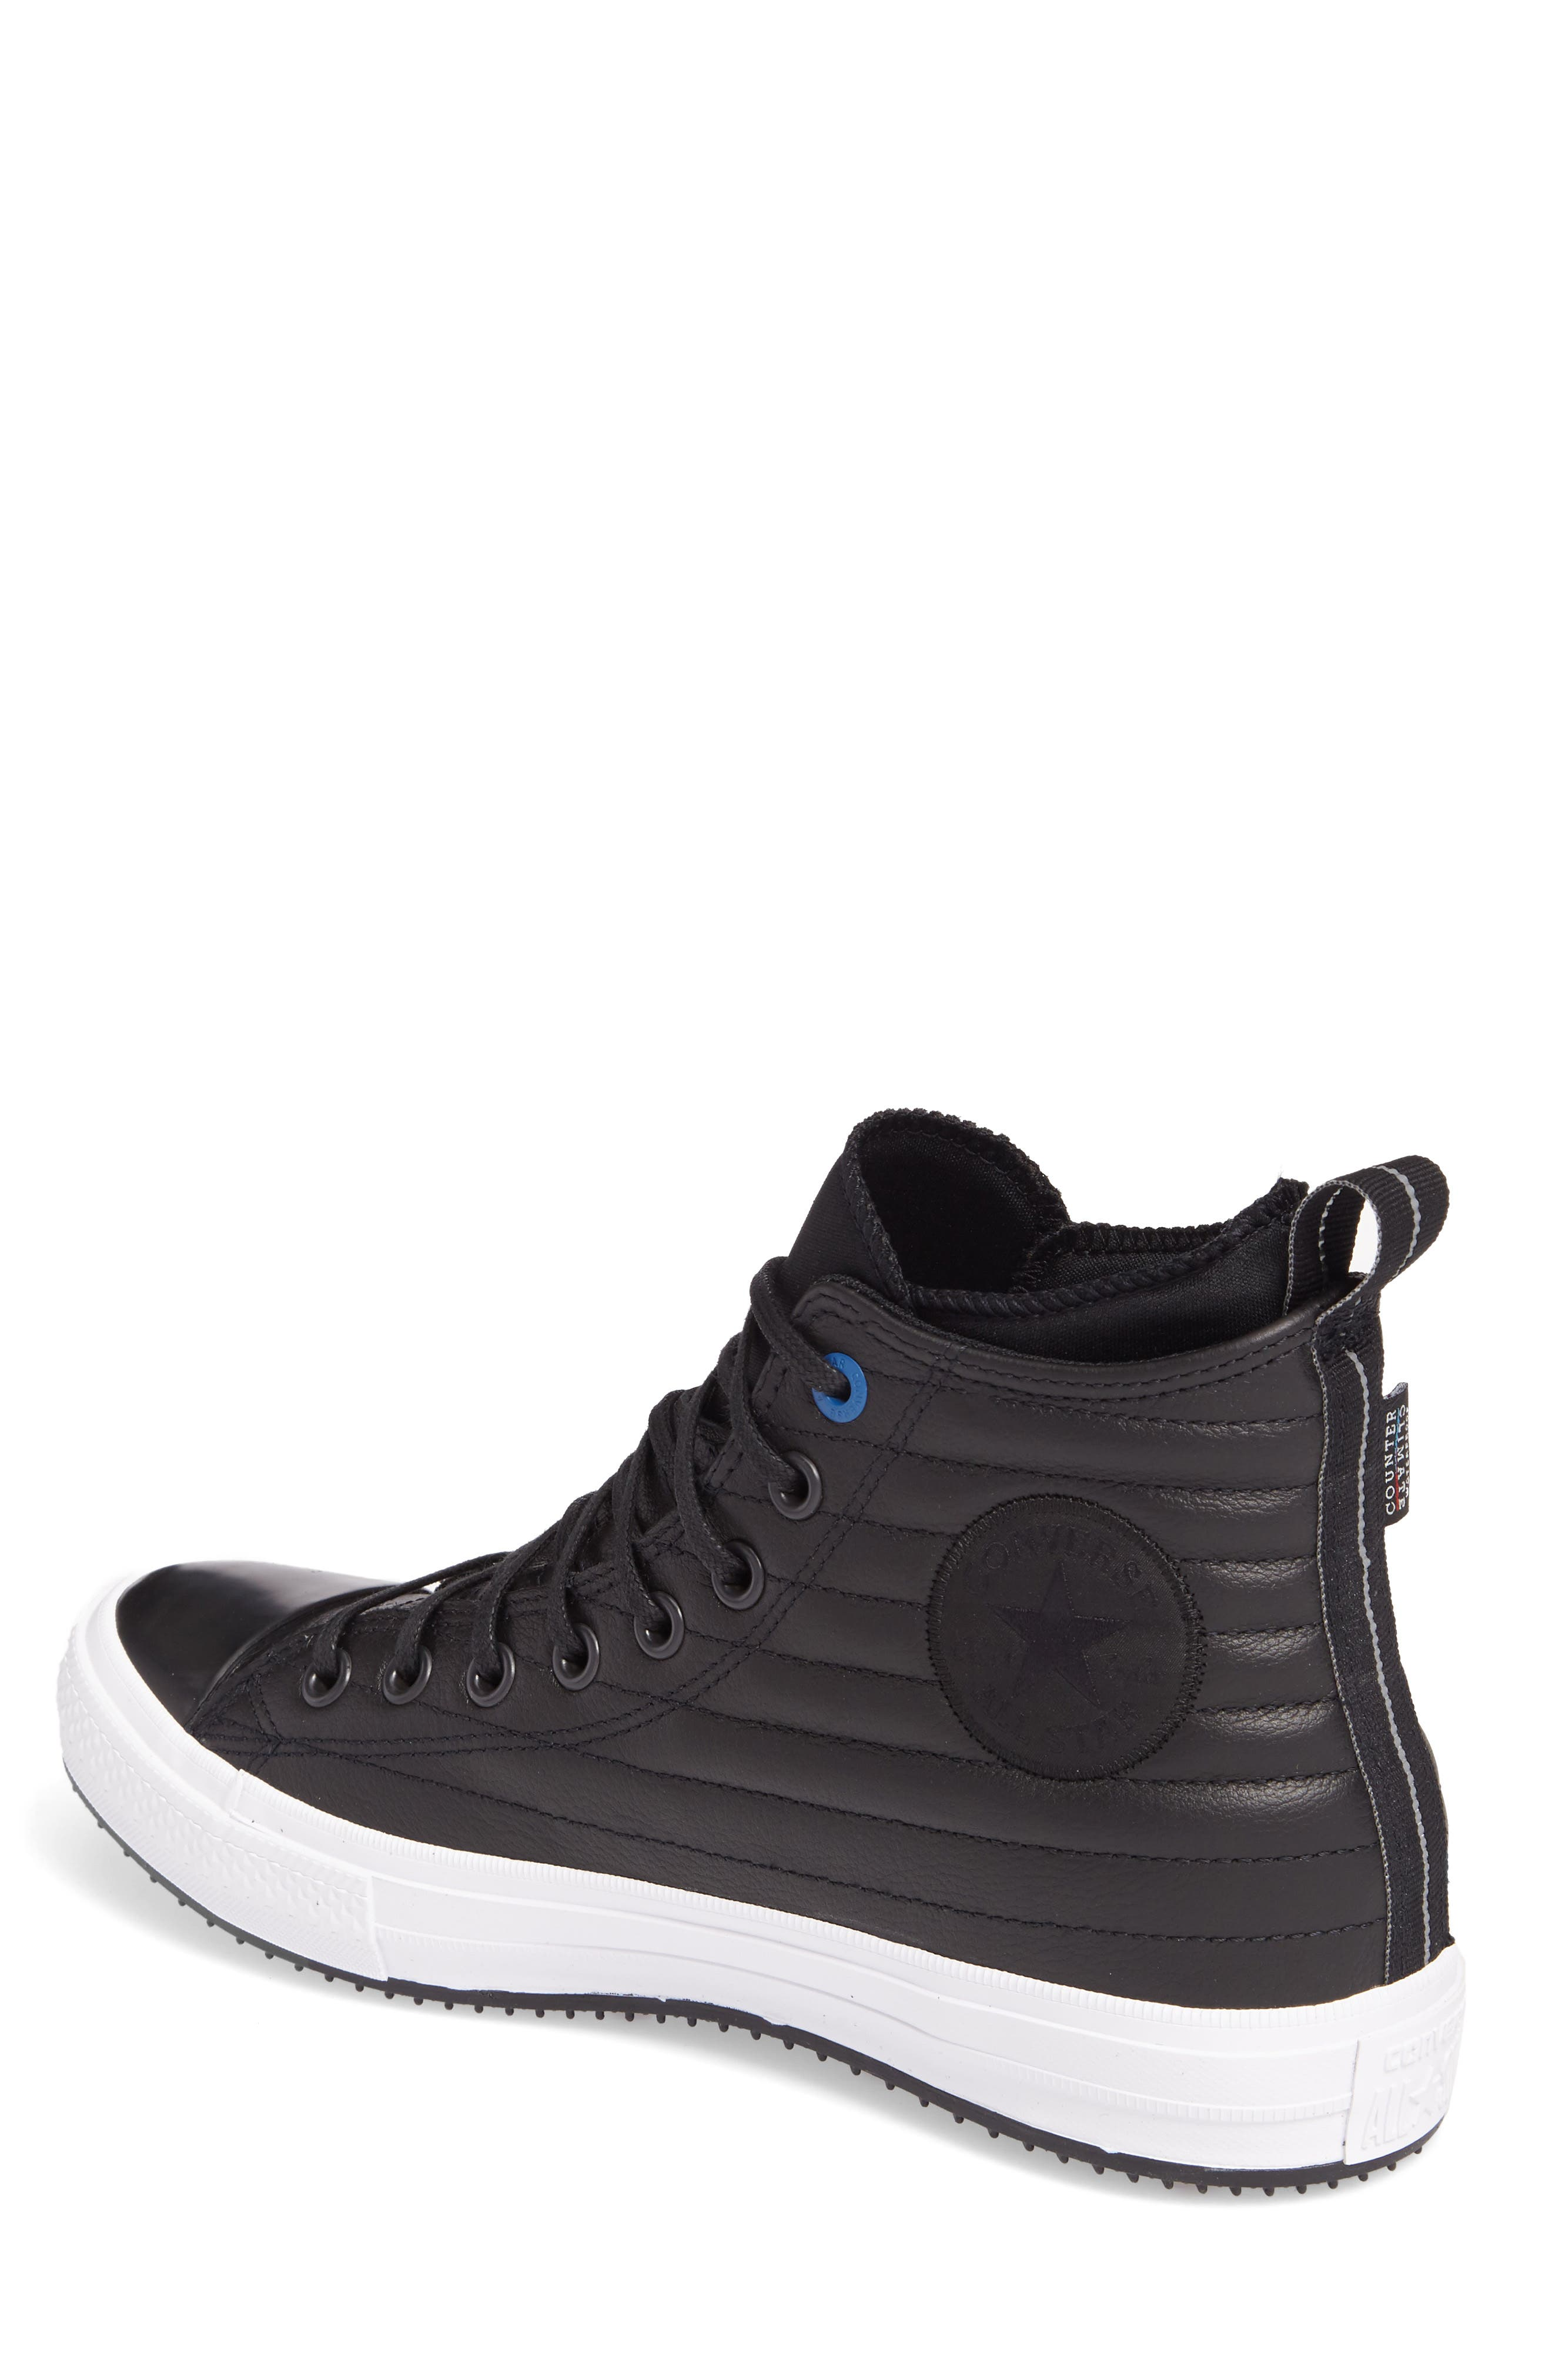 Chuck Taylor<sup>®</sup> All Star<sup>®</sup> Waterproof Quilted Sneaker,                             Alternate thumbnail 2, color,                             001